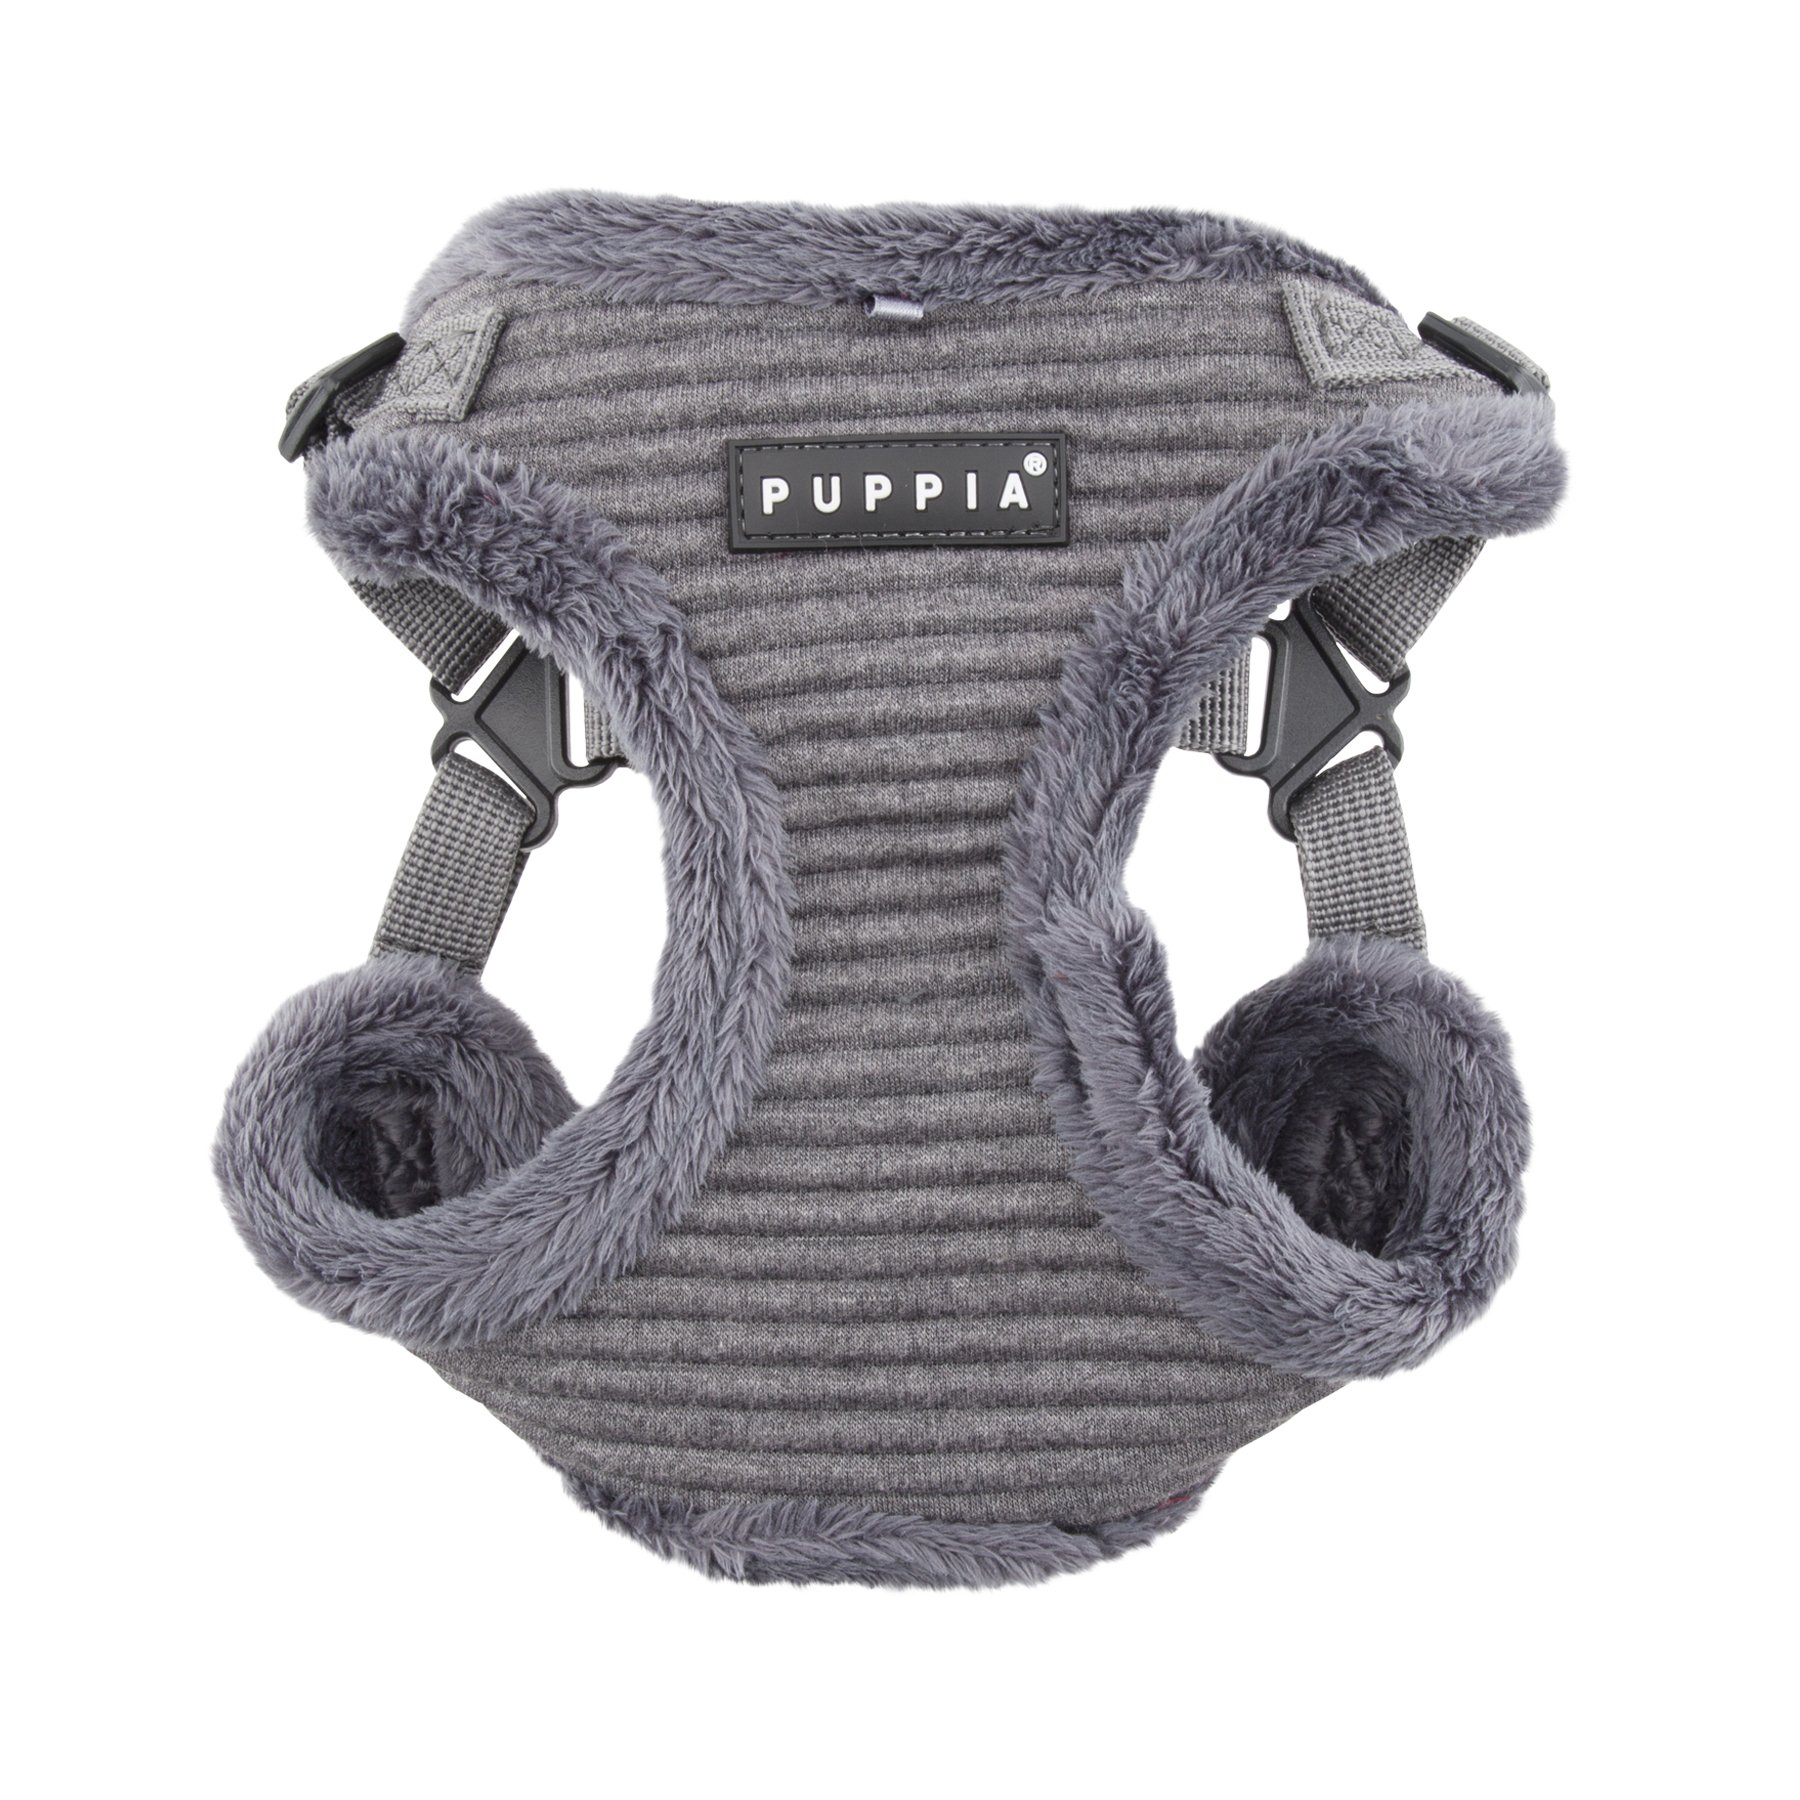 Puppia Troy Harness-C for Pets, Mélange Grey, Medium by Puppia